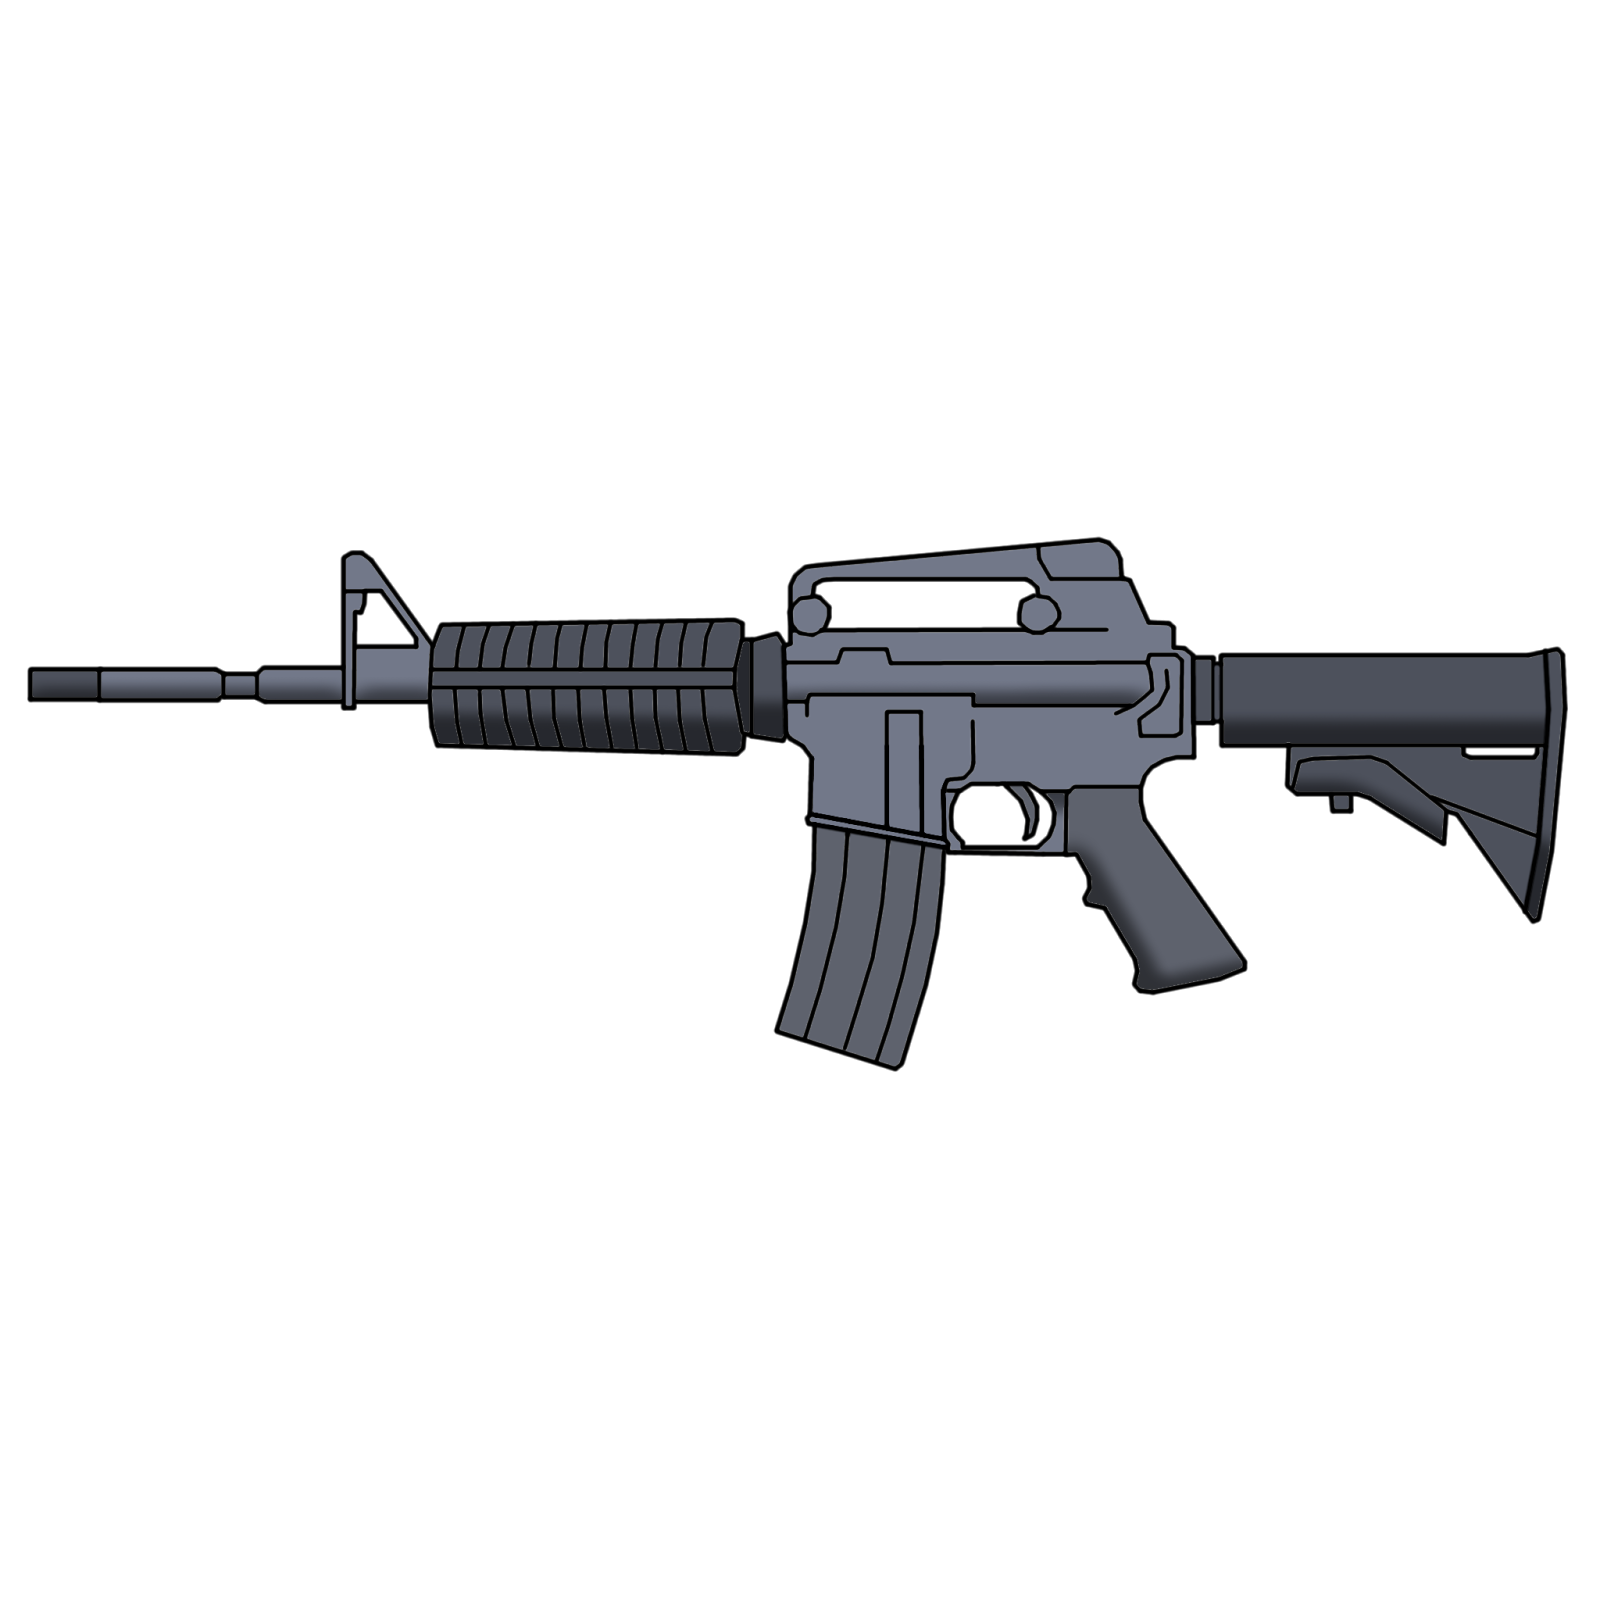 sop for m4 m4a1 Building a sopmod block 2 weapon read on context: sopmod stands for special operations peculiar modification the sopmod block 2 is a group of aftermarket weapon accessories issued to units in the us military that fall under the united states special operations command (socom.